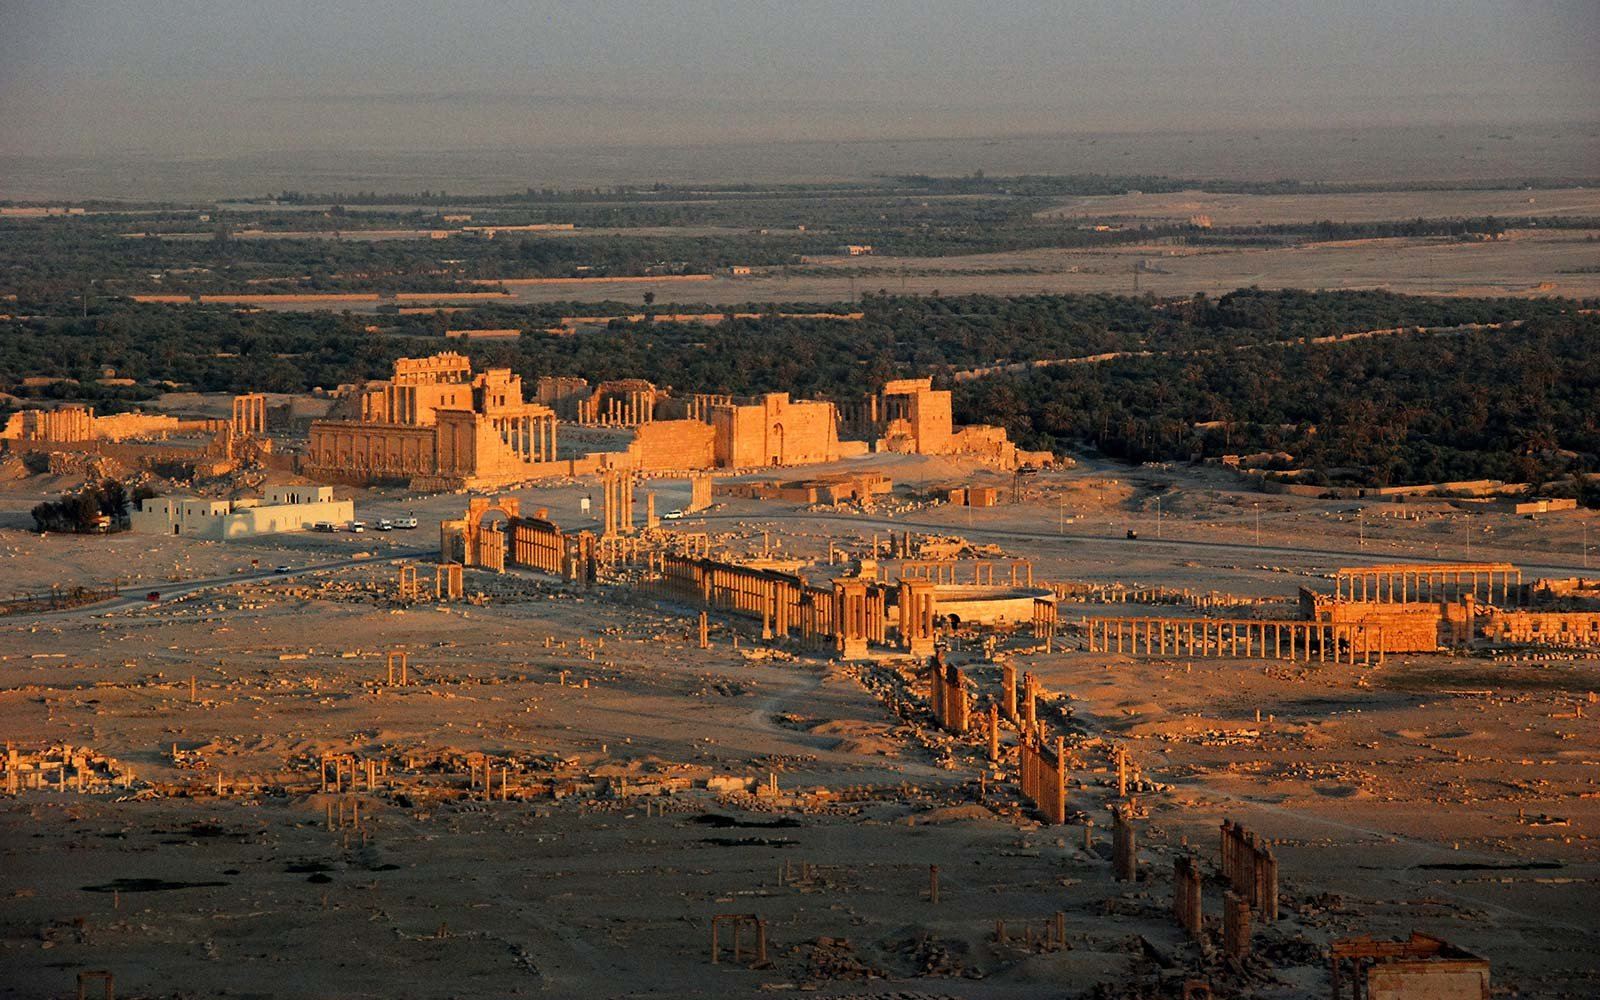 Once a Beloved Archeological and Tourist Site, Palmyra Is Now a Battlefield